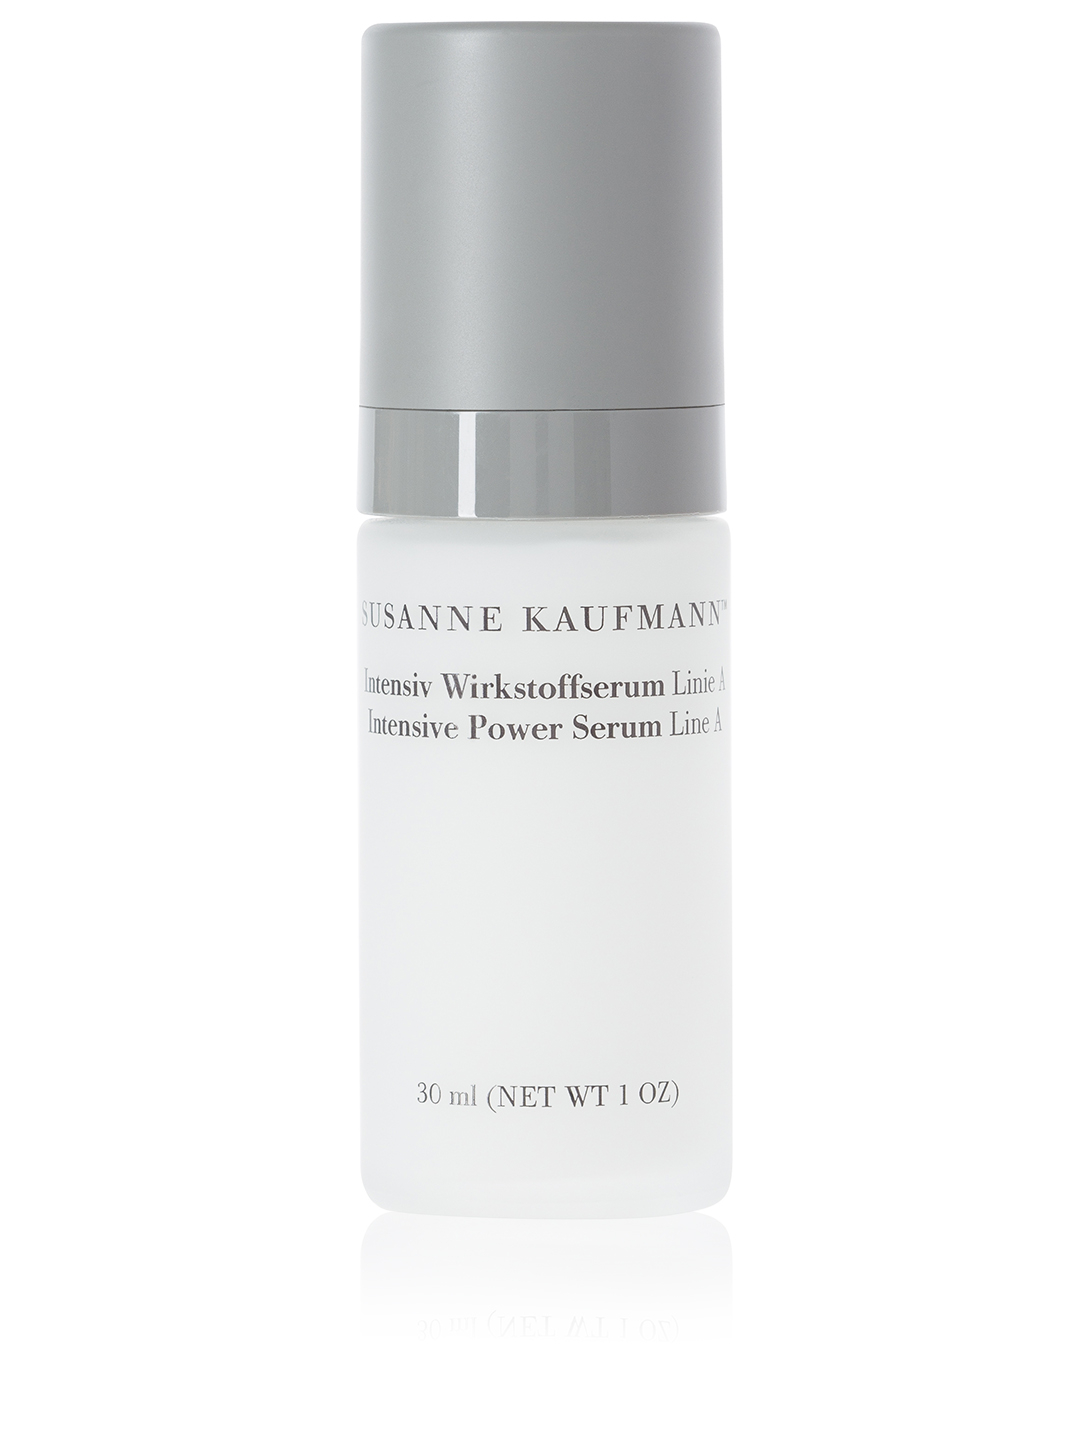 SUSANNE KAUFMANN Intensive Power Serum Beauty